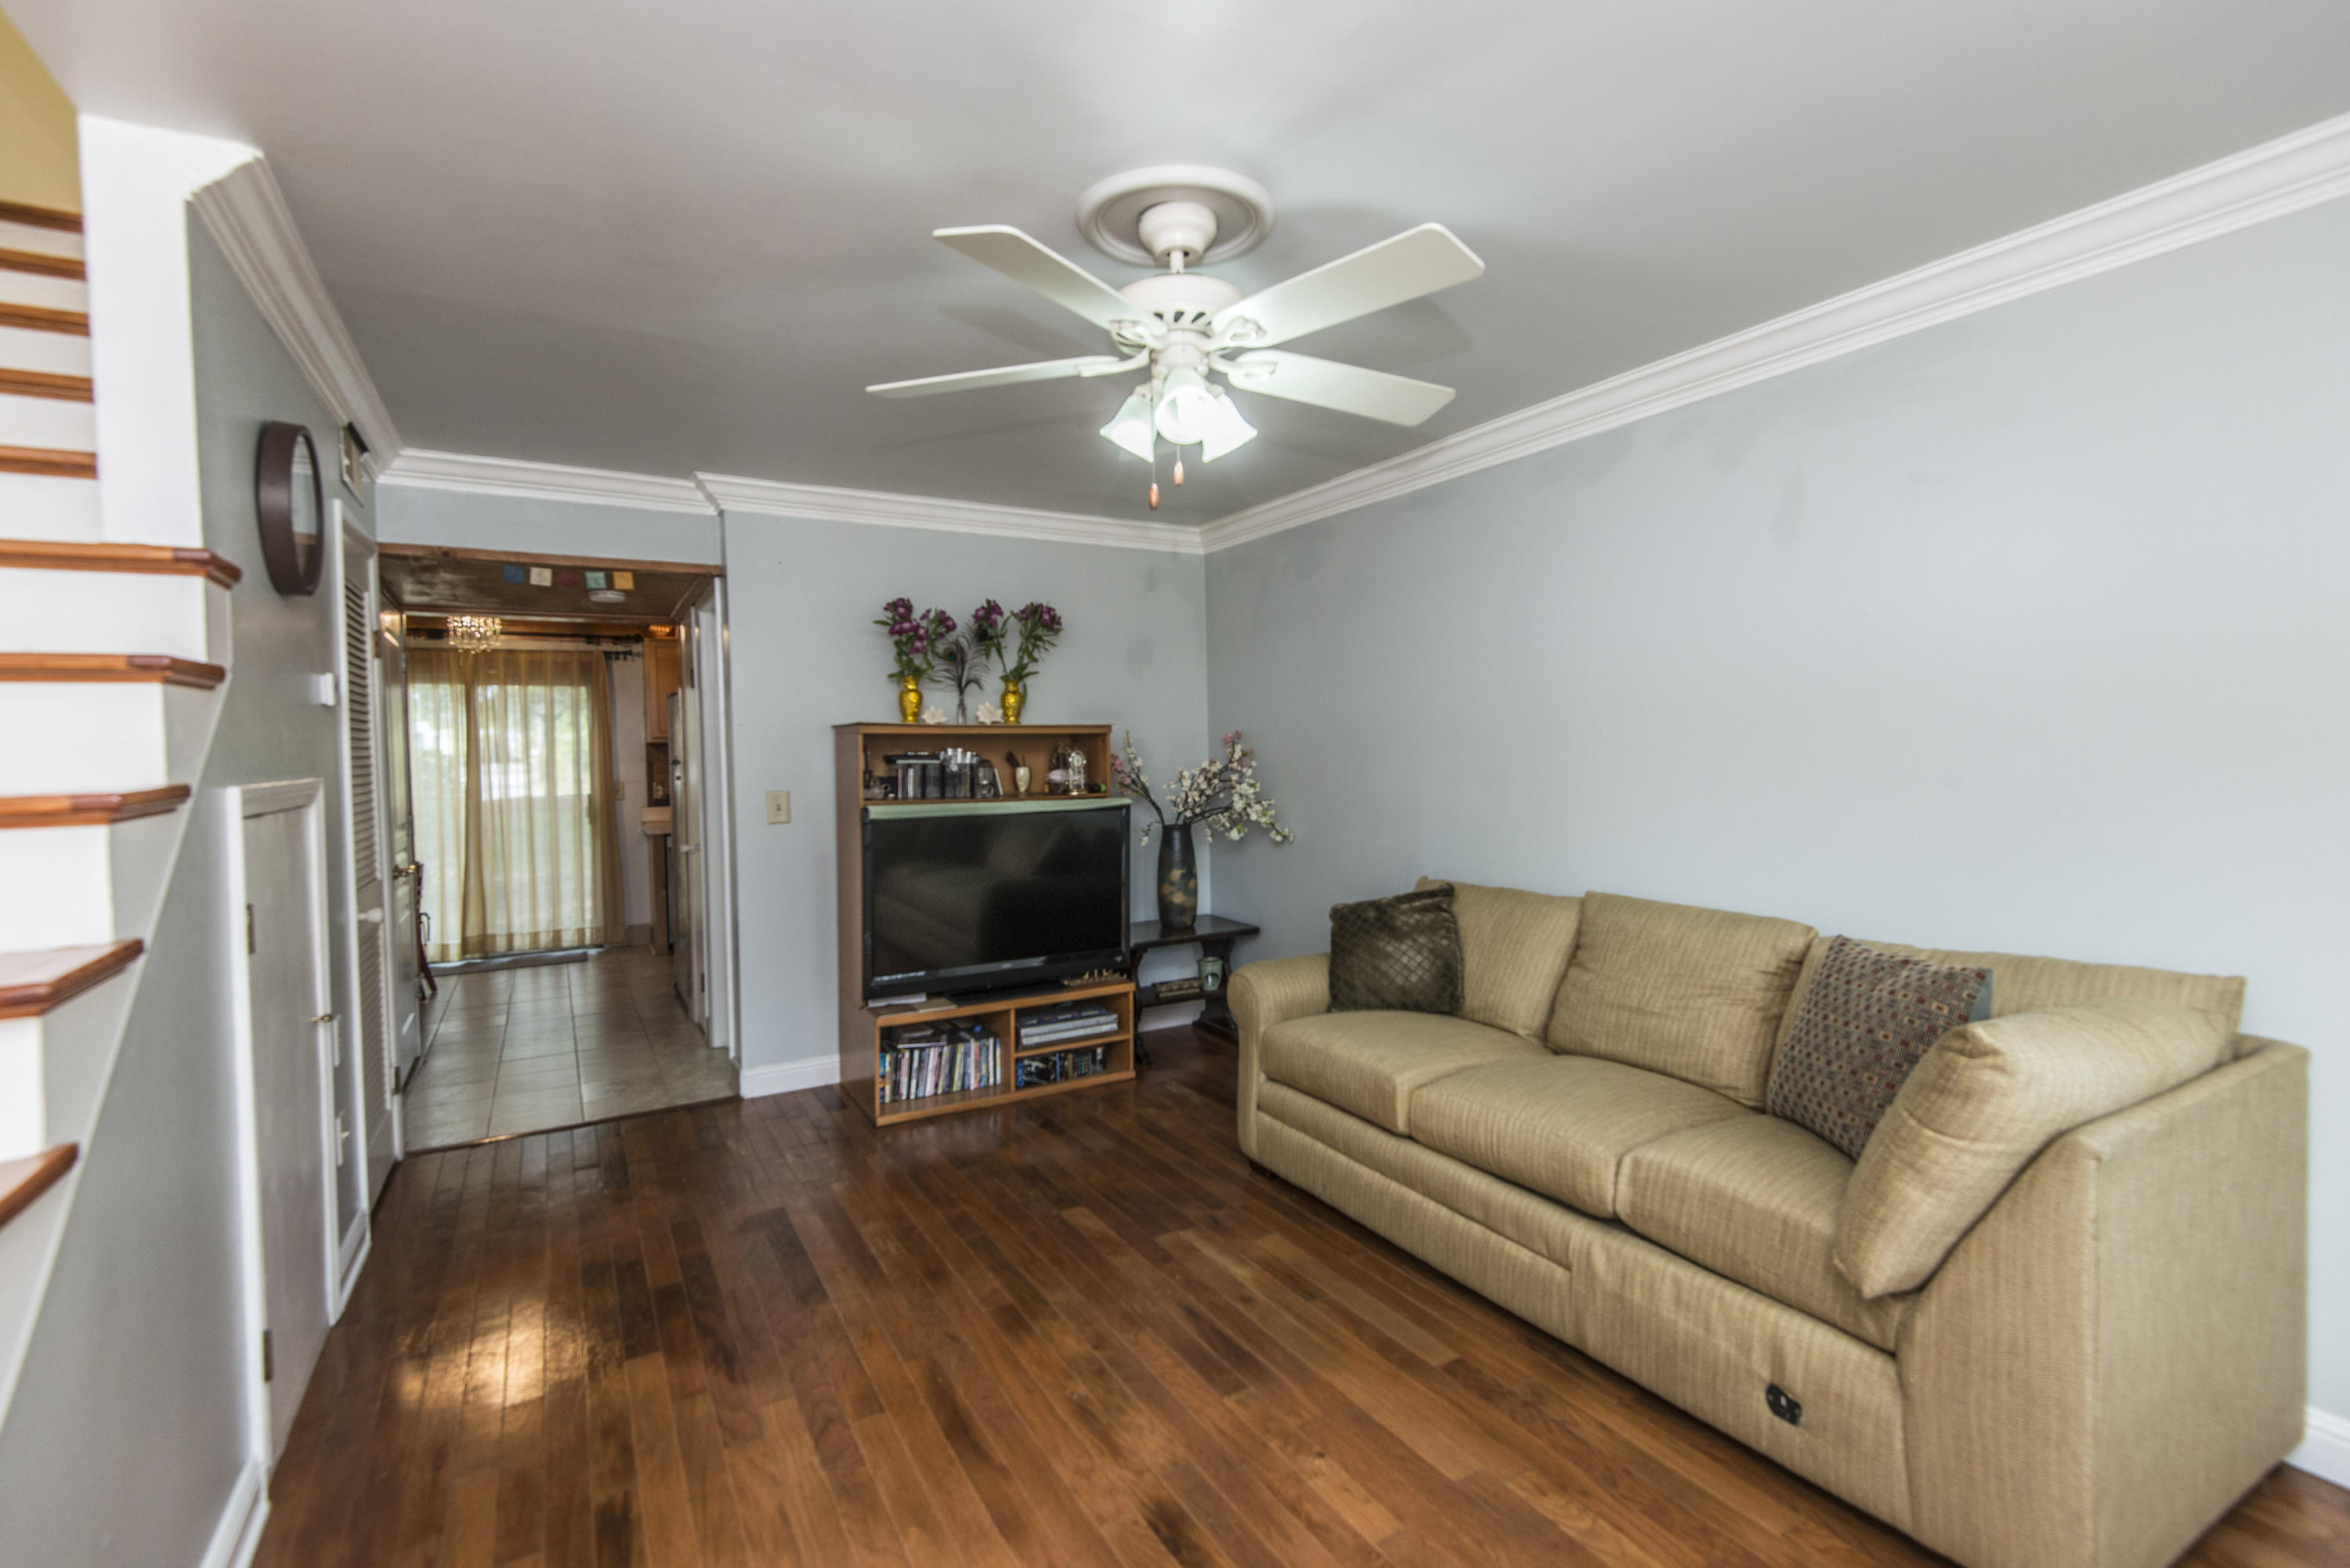 Rivers Point Row Homes For Sale - 21 Rivers Point Row, Charleston, SC - 23